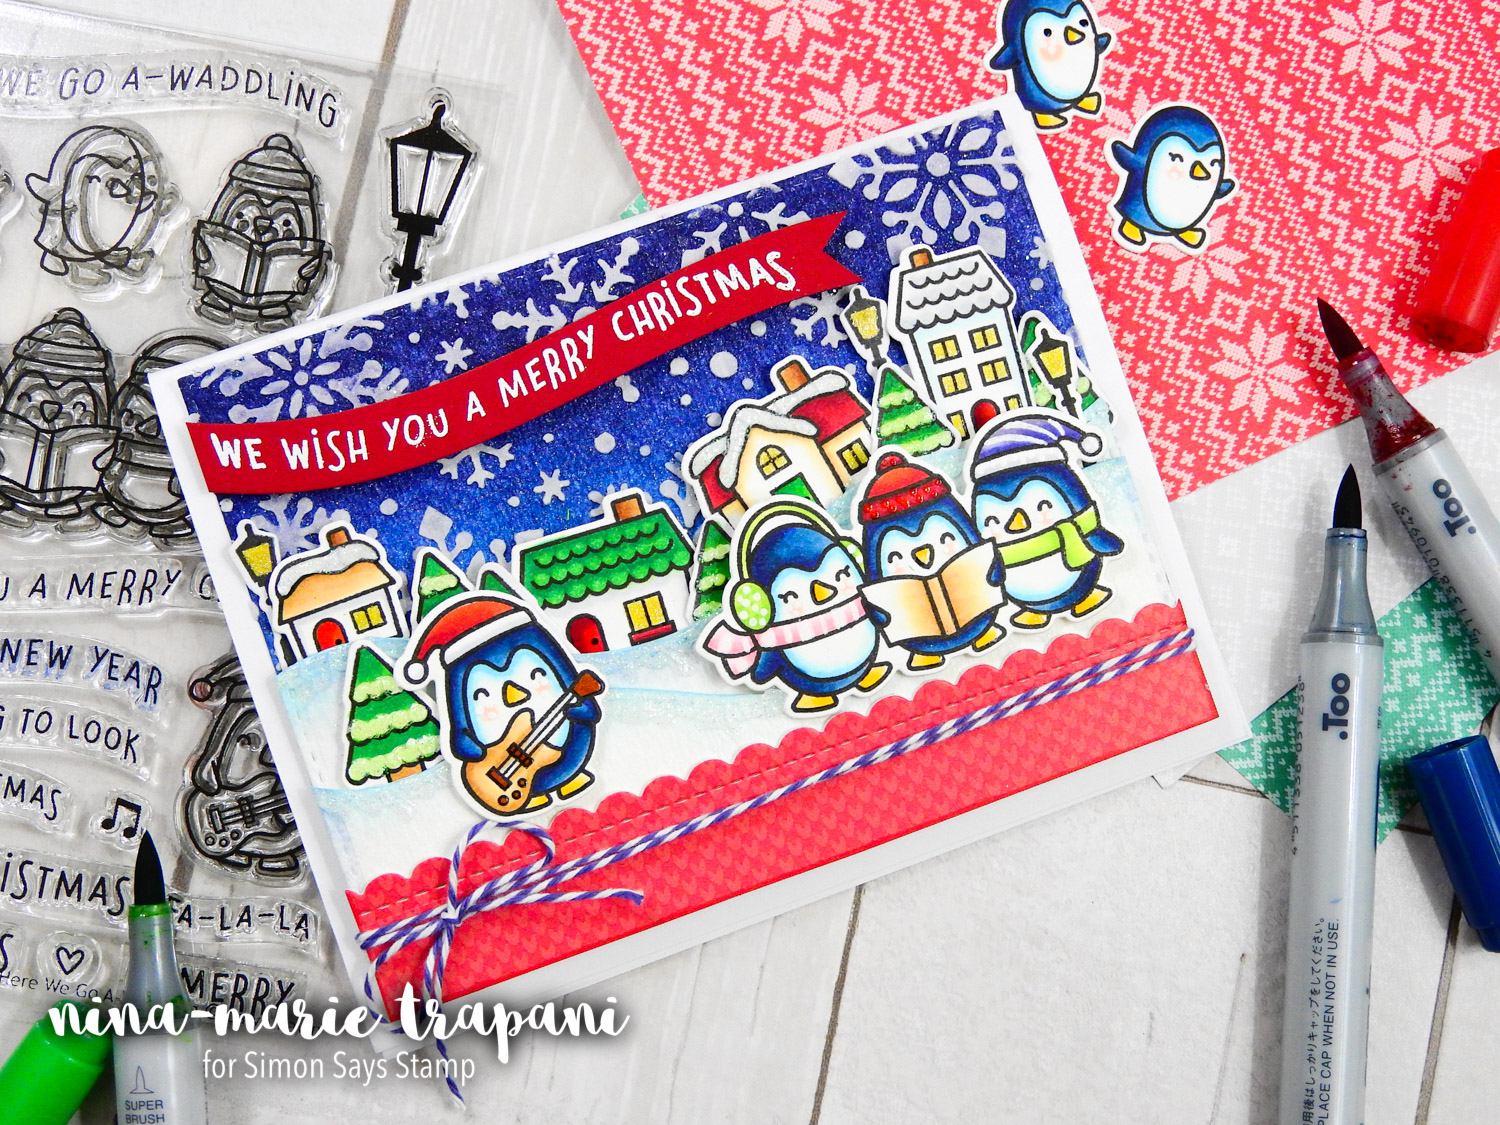 Studio Monday with Nina-Marie: Lawn Fawn Pop Up Holiday Gift Card ...